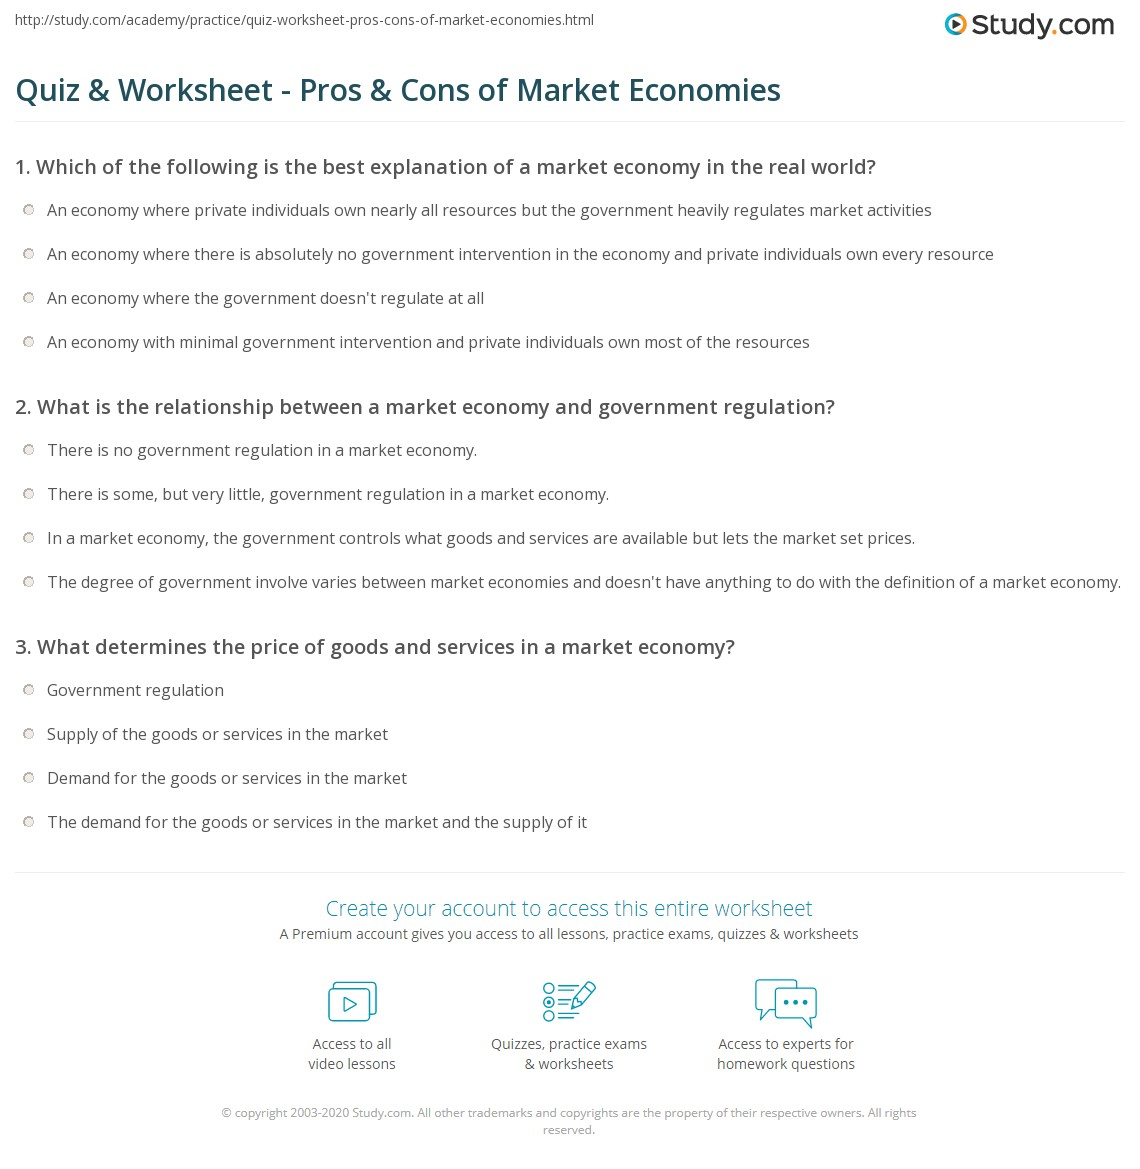 quiz & worksheet - pros & cons of market economies | study